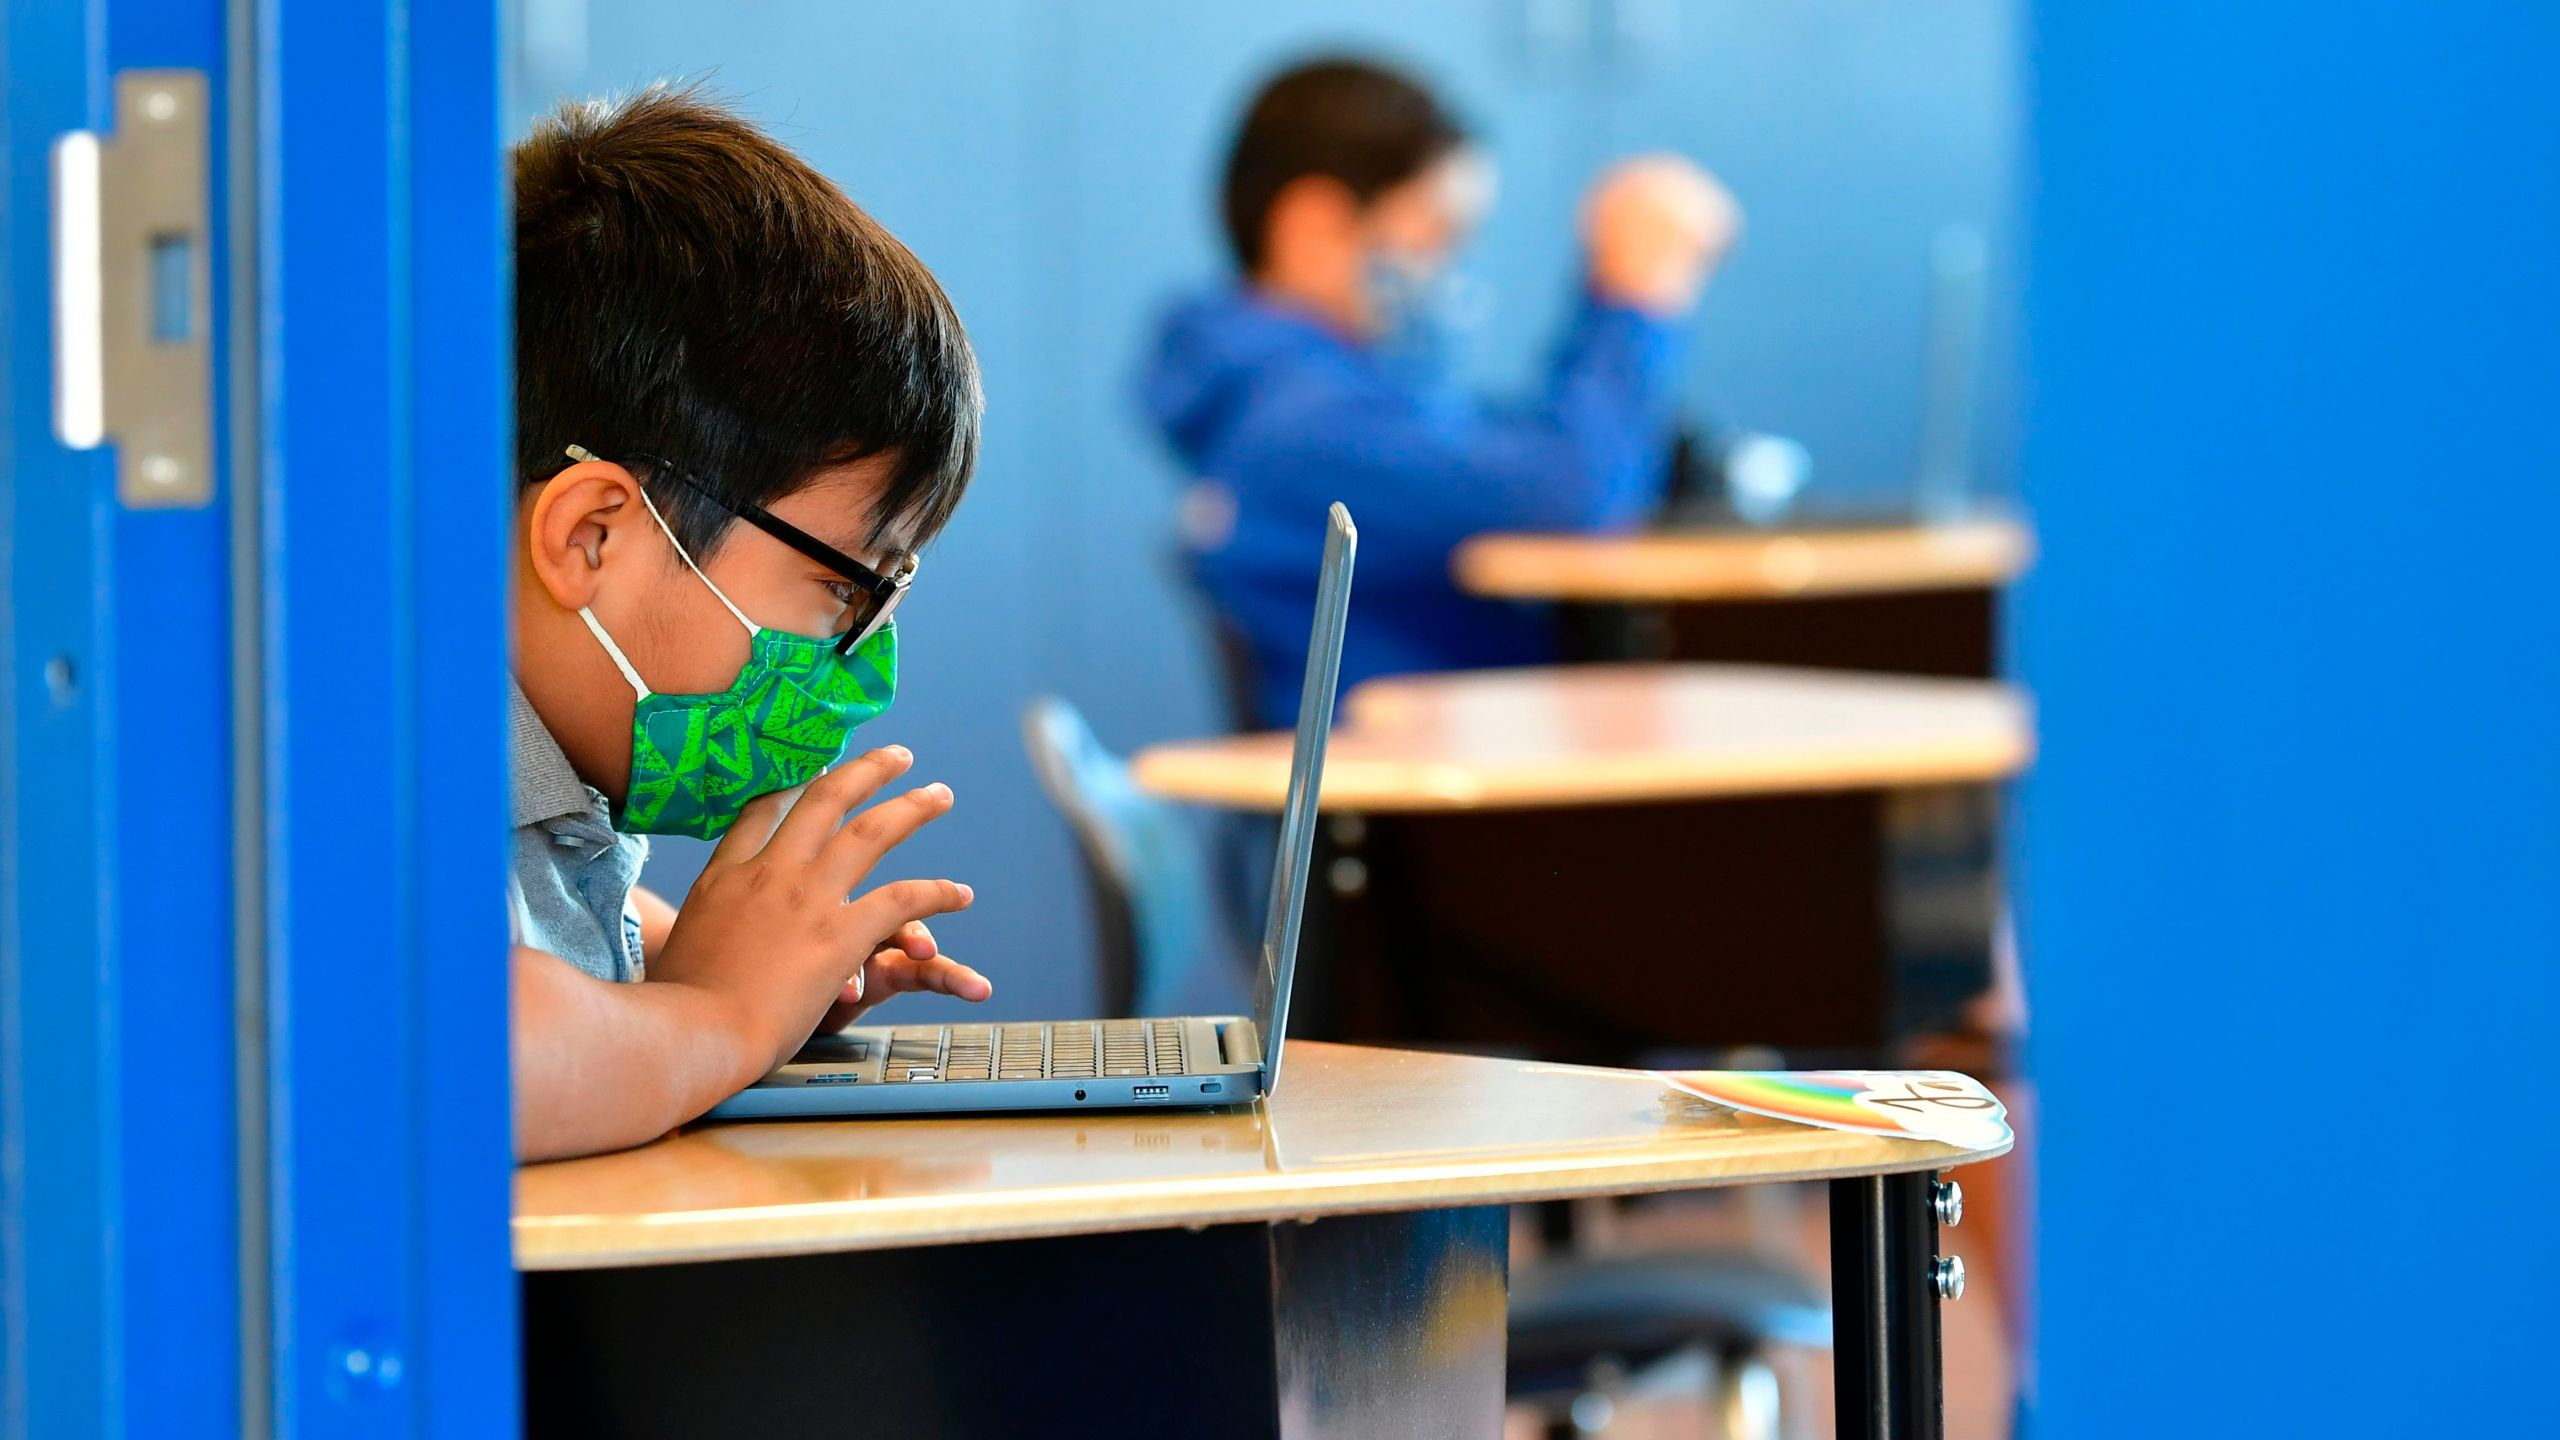 Students work on their laptop computers on Nov. 16, 2020, at St. Joseph Catholic School in La Puente, California, where pre-kindergarten to second grade students in need of special services returned to the classroom for in-person instruction. (FREDERIC J. BROWN/AFP via Getty Images)